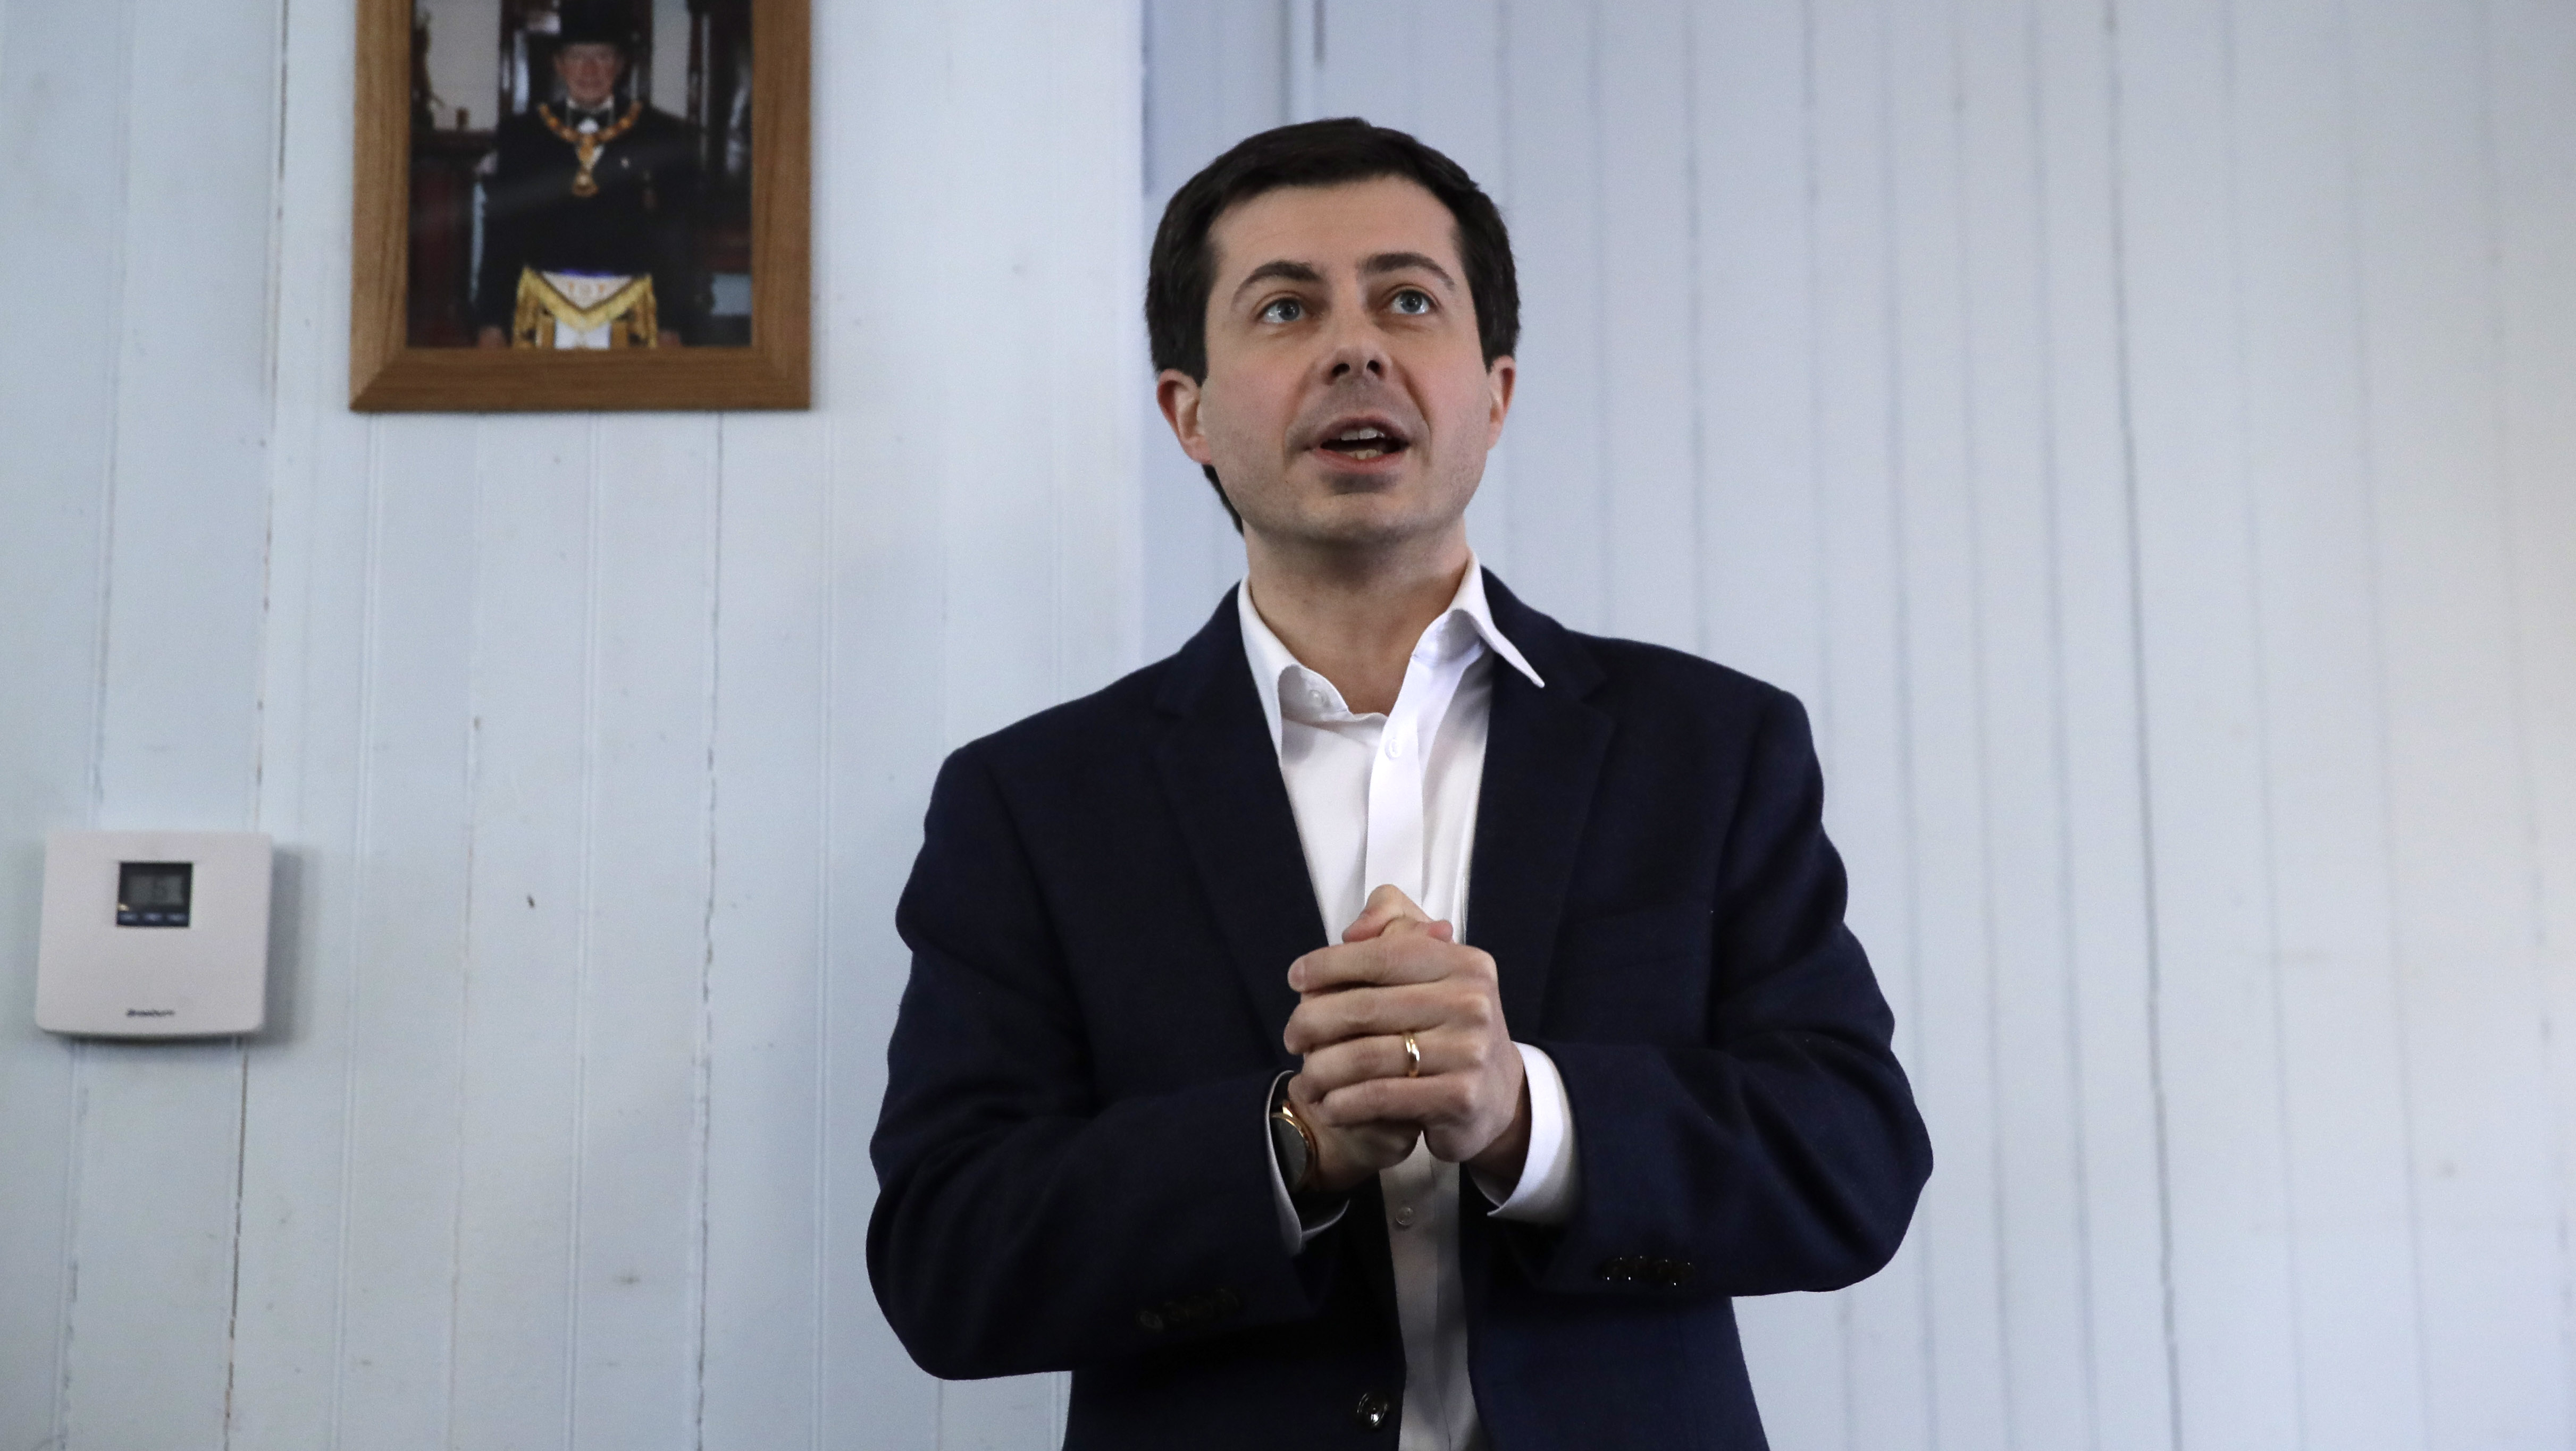 South Bend, Ind., Mayor and presidential candidate Pete Buttigieg.